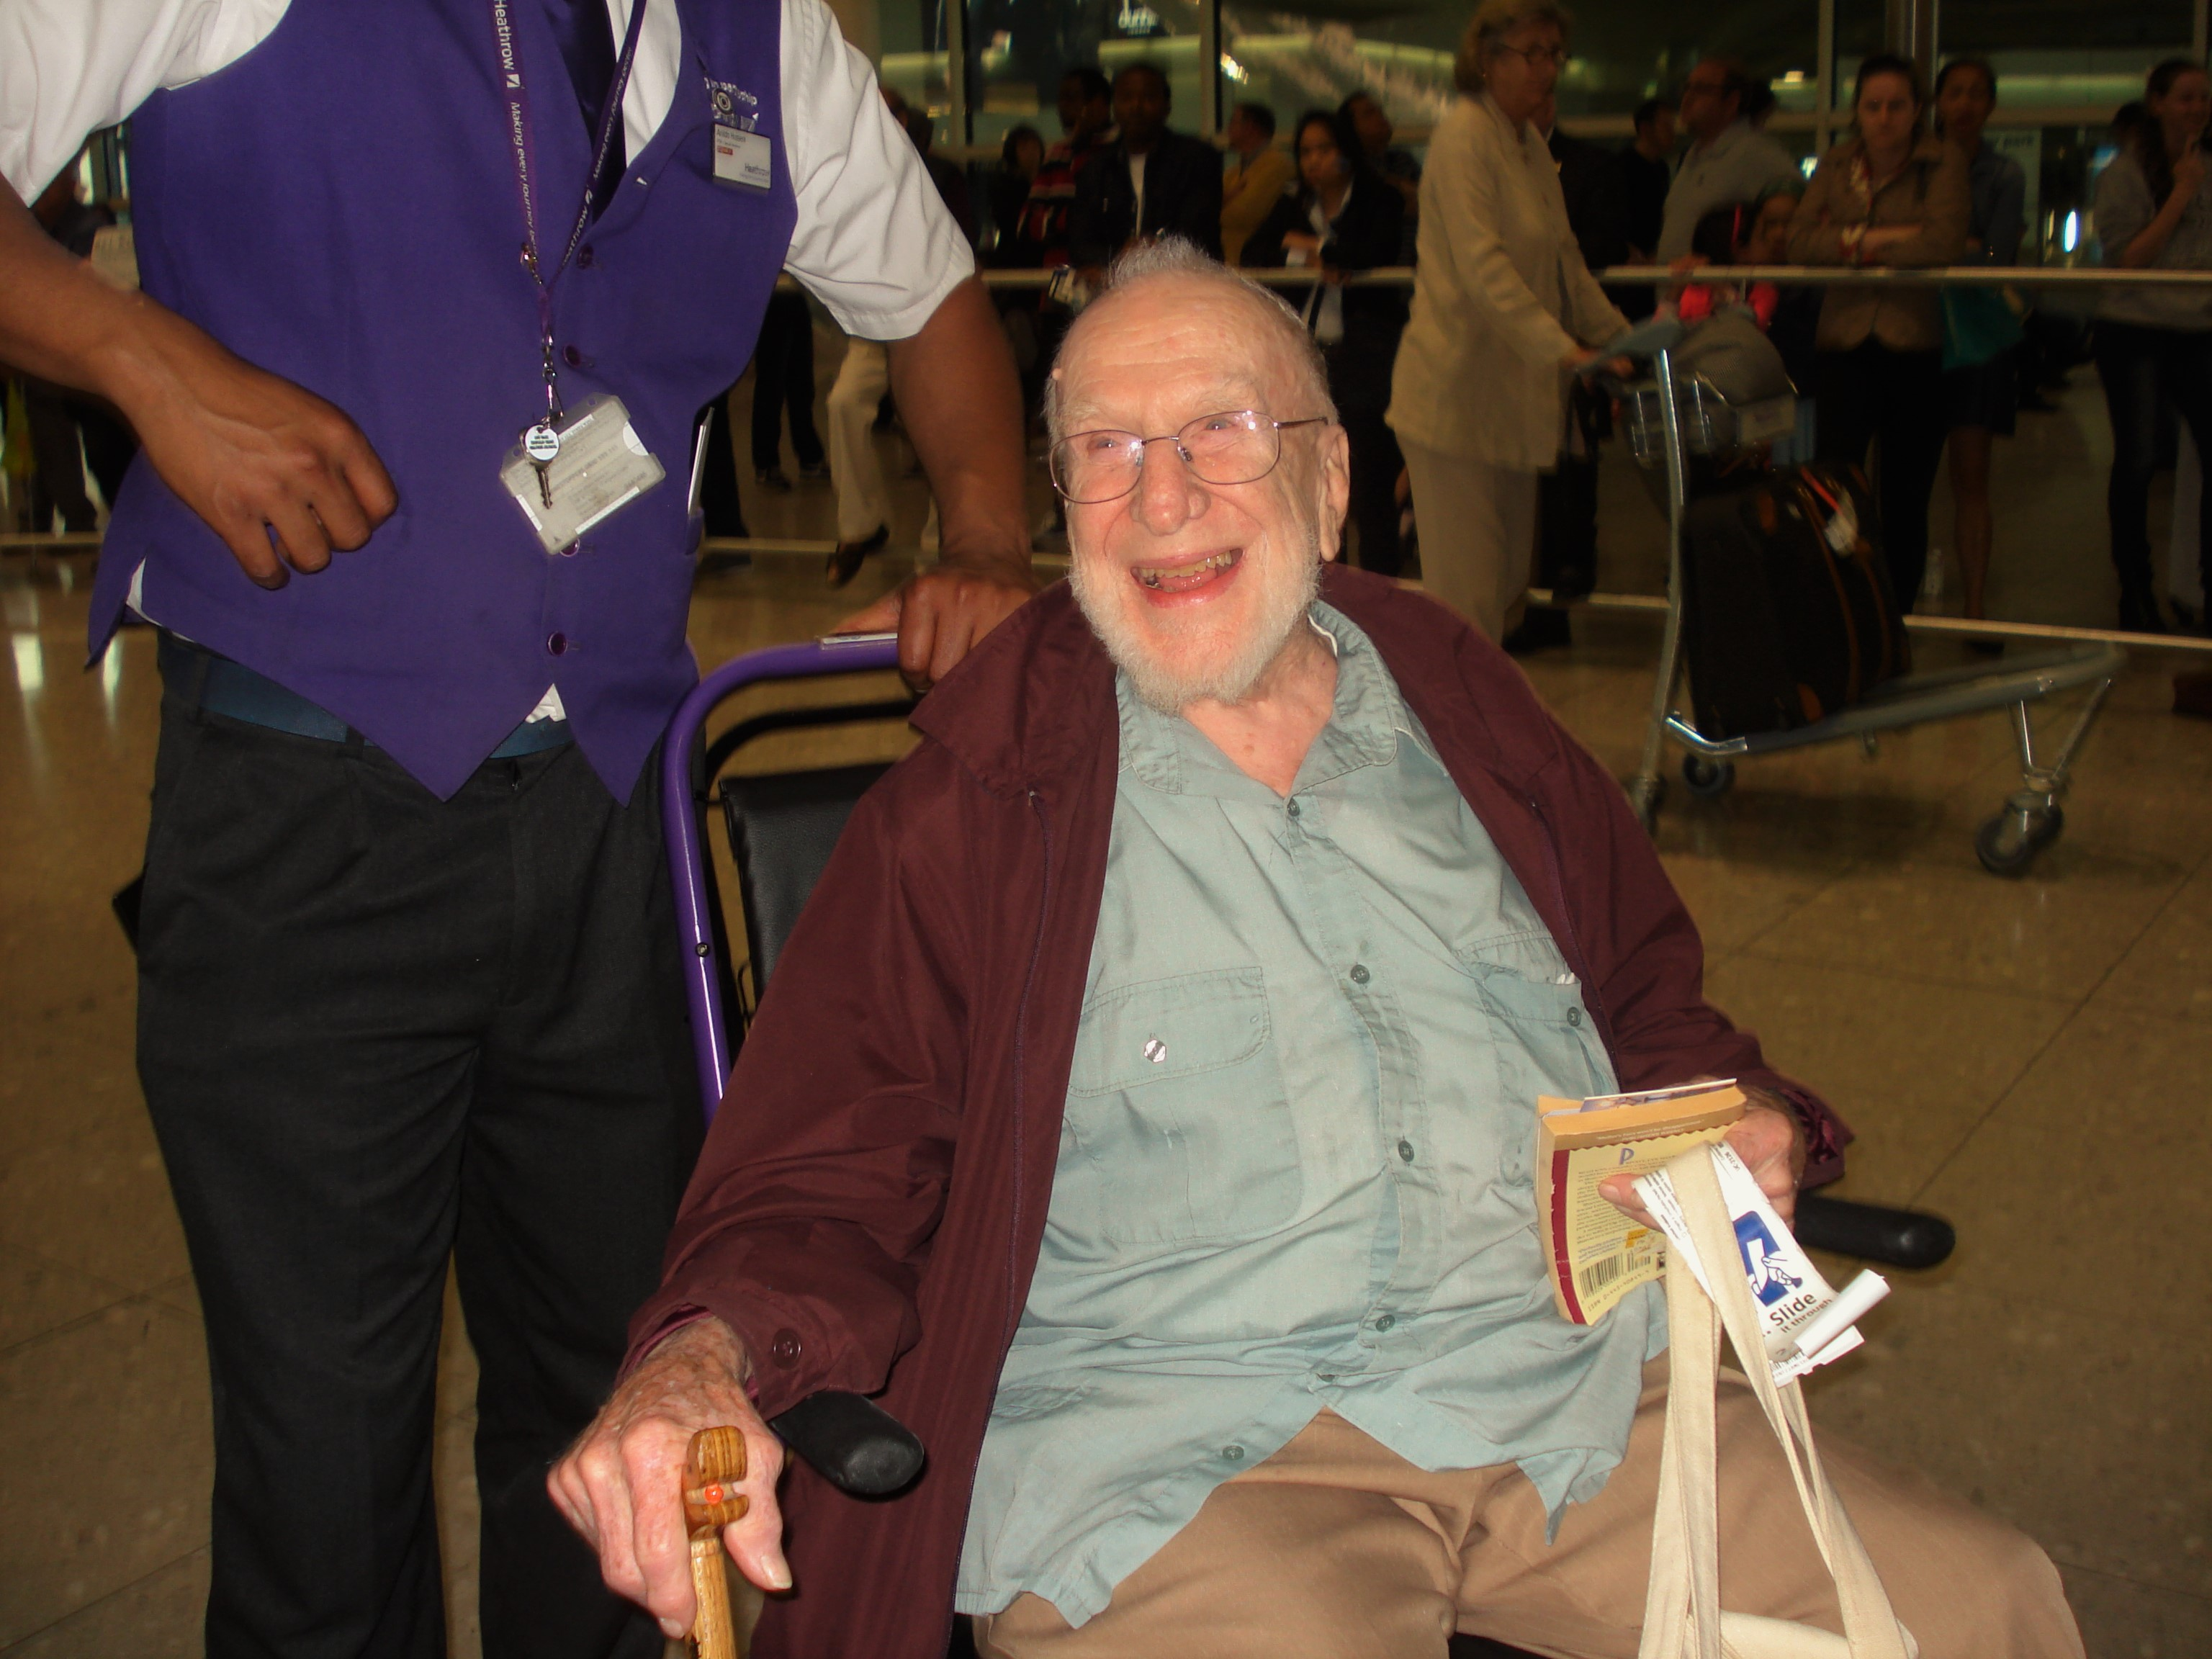 Don at heathrow